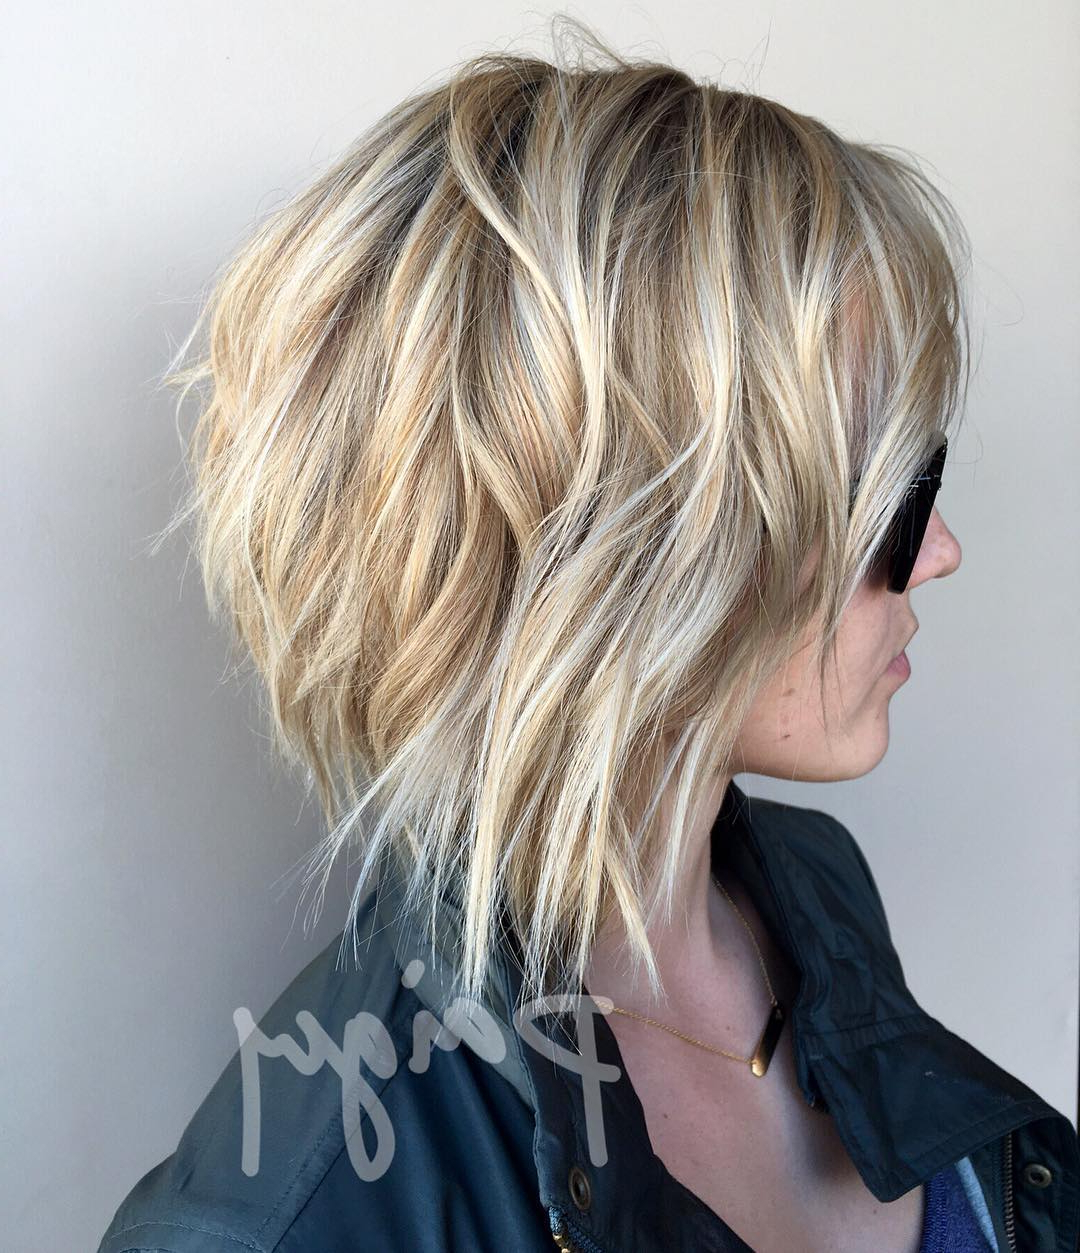 Latest Cute Shaggy Medium Haircuts Pertaining To 10 Super Cute And Easy Medium Hairstyles (View 8 of 20)